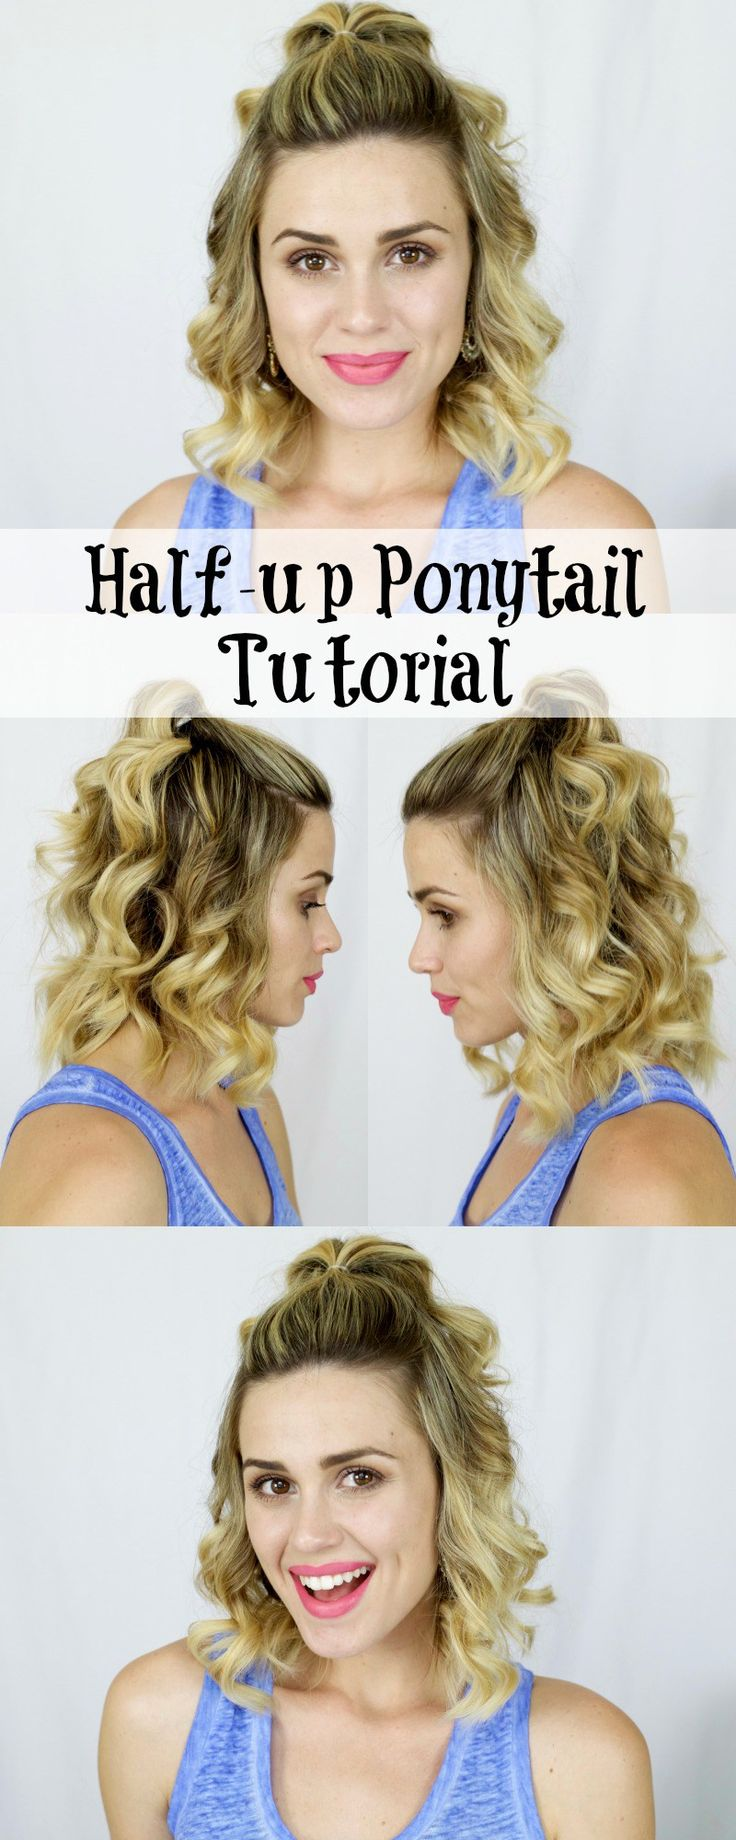 Half-up Ponytail tutorial and how to use the NuMe Classic pearl wand | • Uptown with Elly Brown